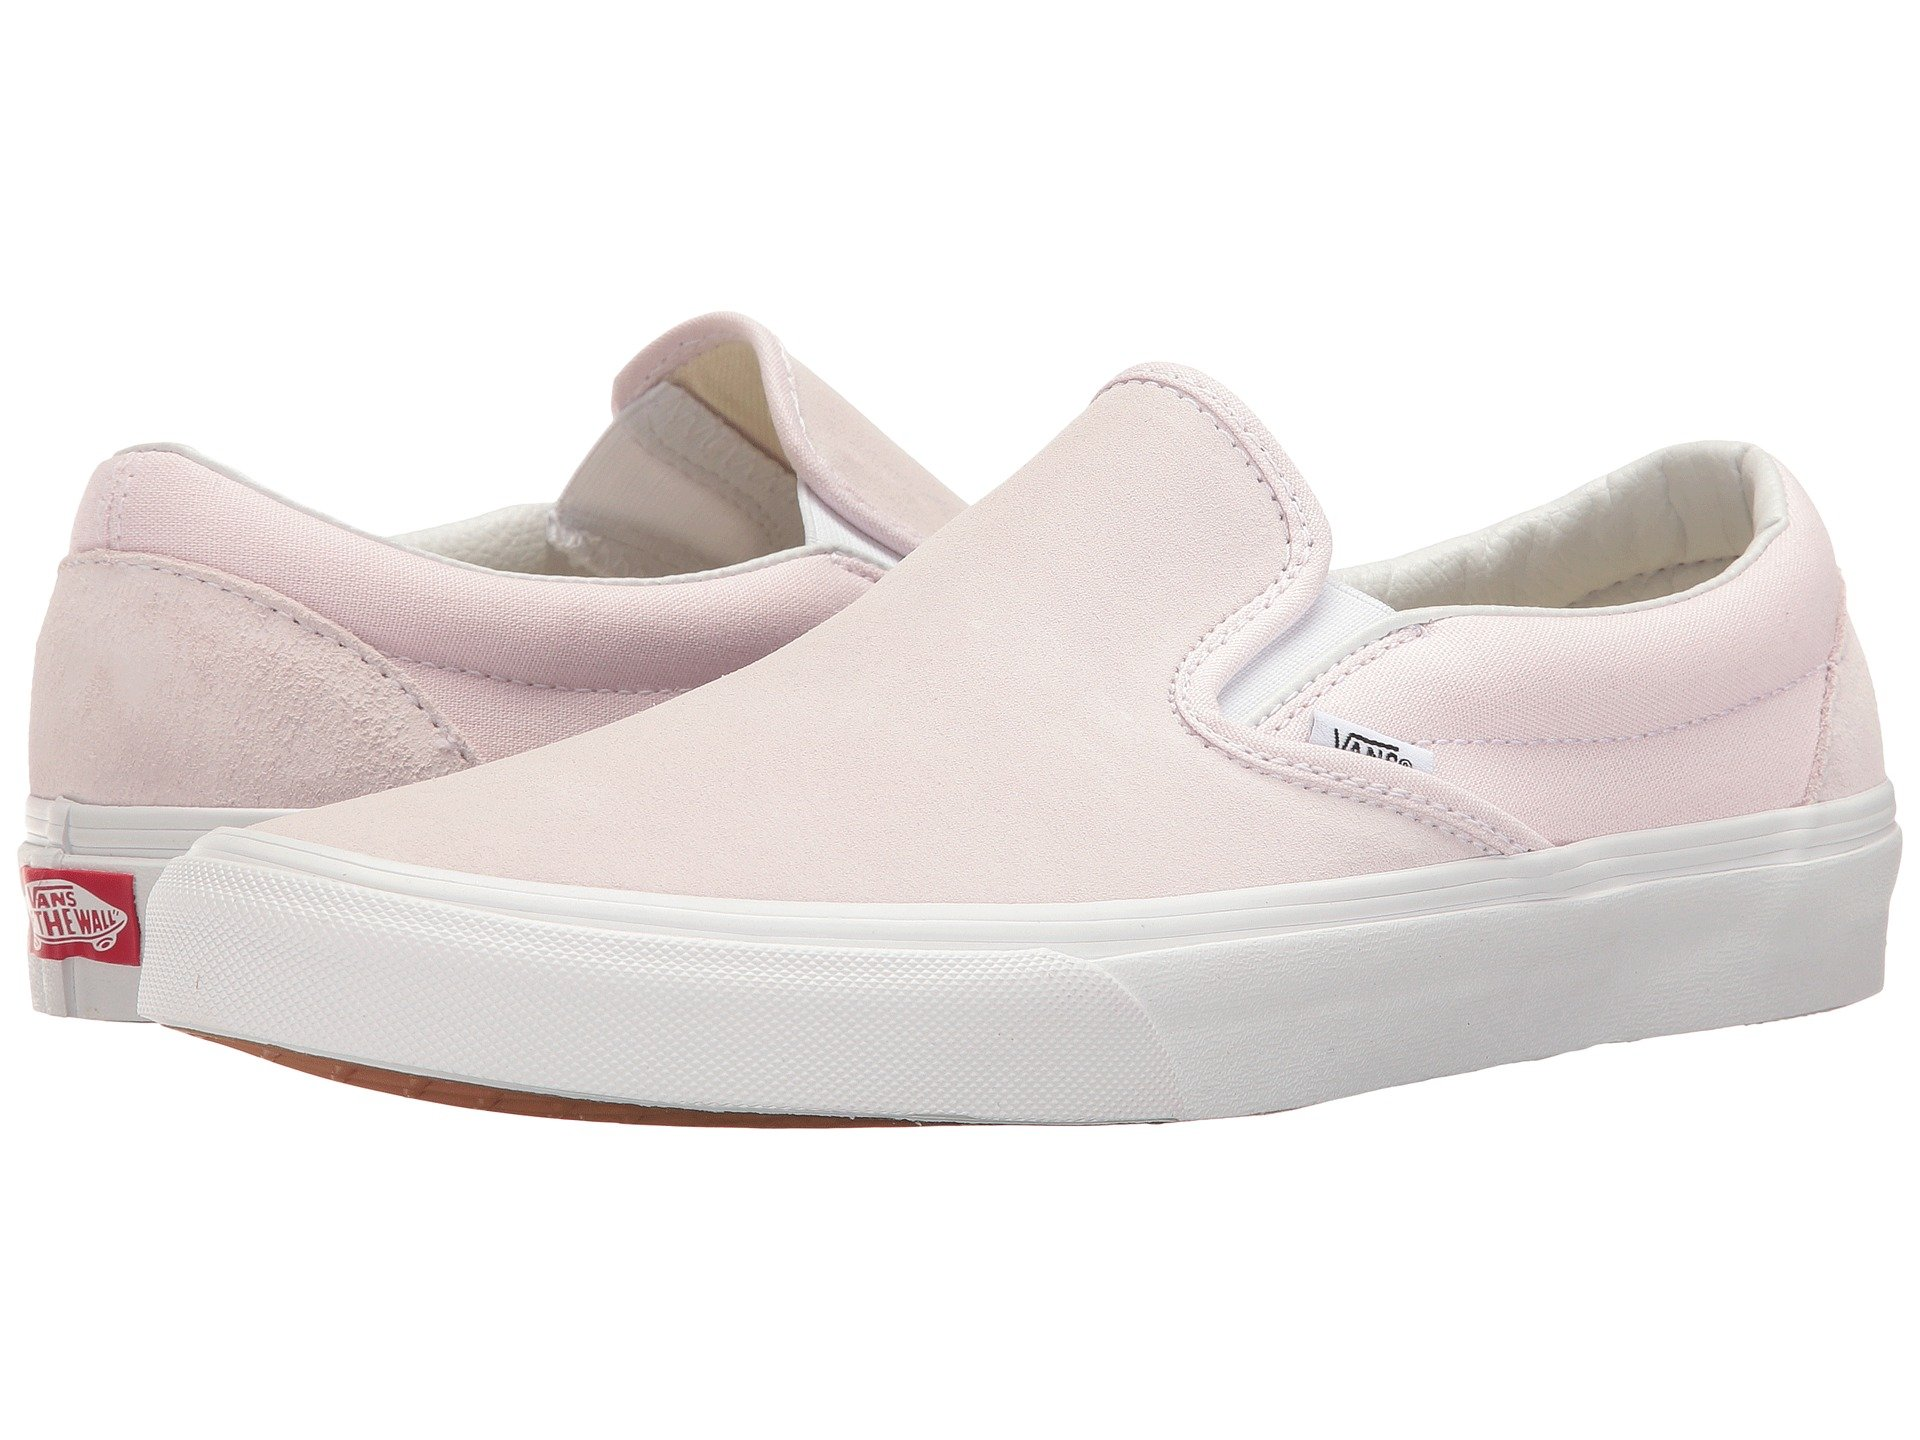 VANS Classic Slip-On™, (Suede/Canvas) Orchid Ice/True